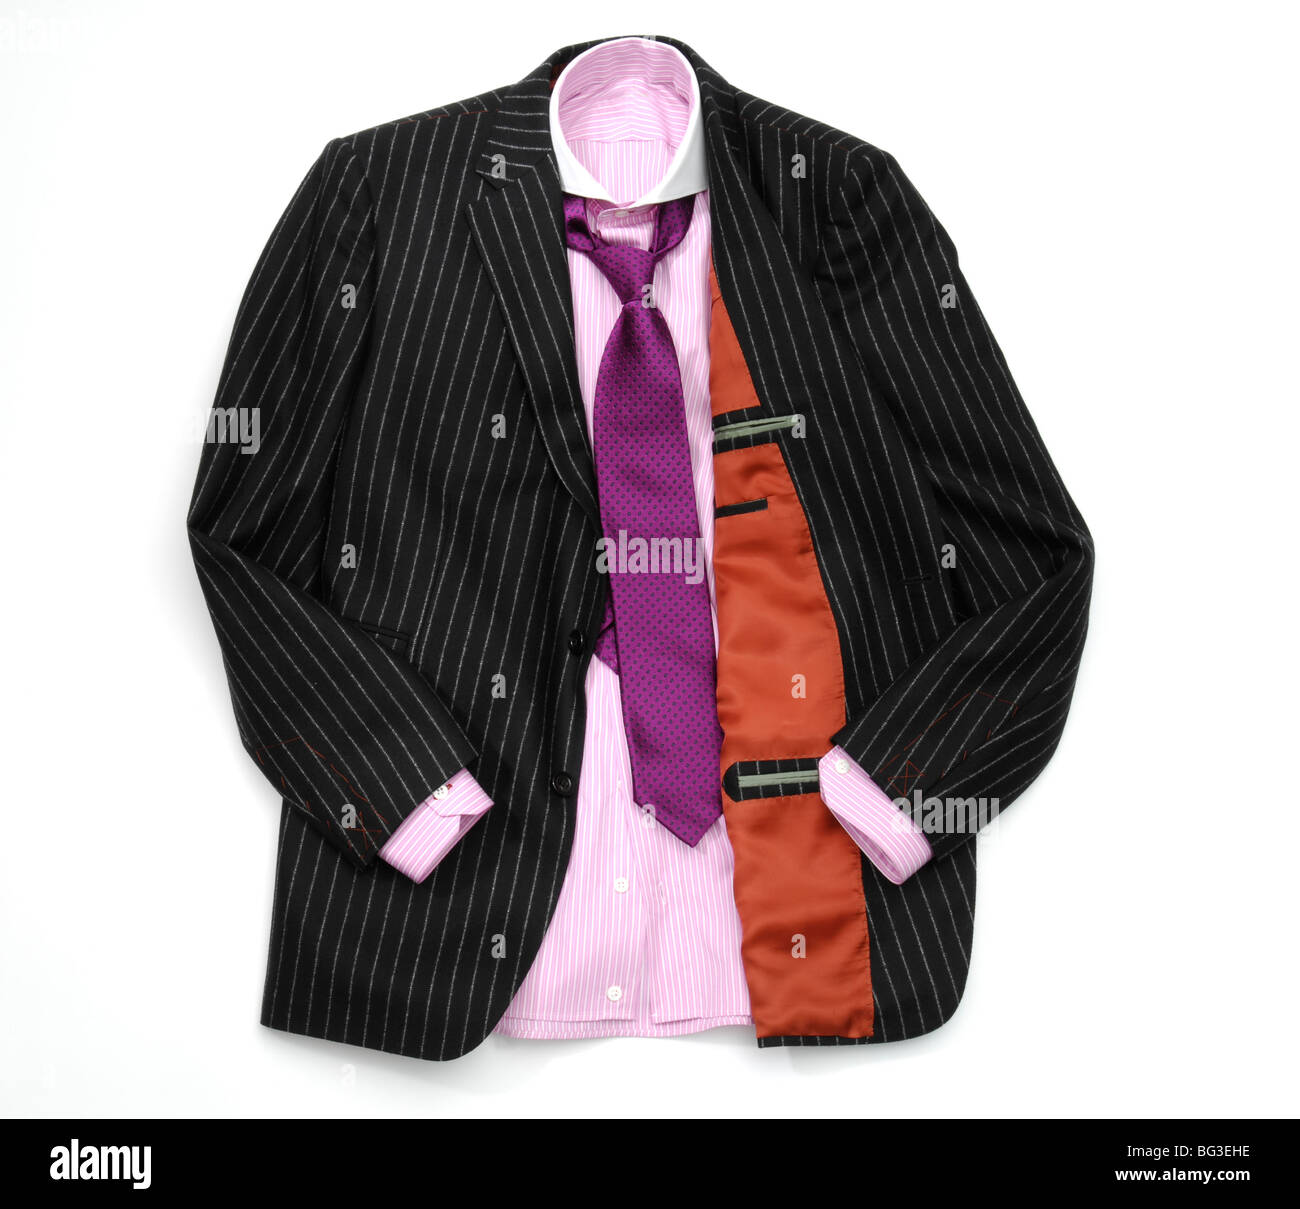 A mens suit - pink shirt, purple tie and black pin stripped black jacket. Stock Photo